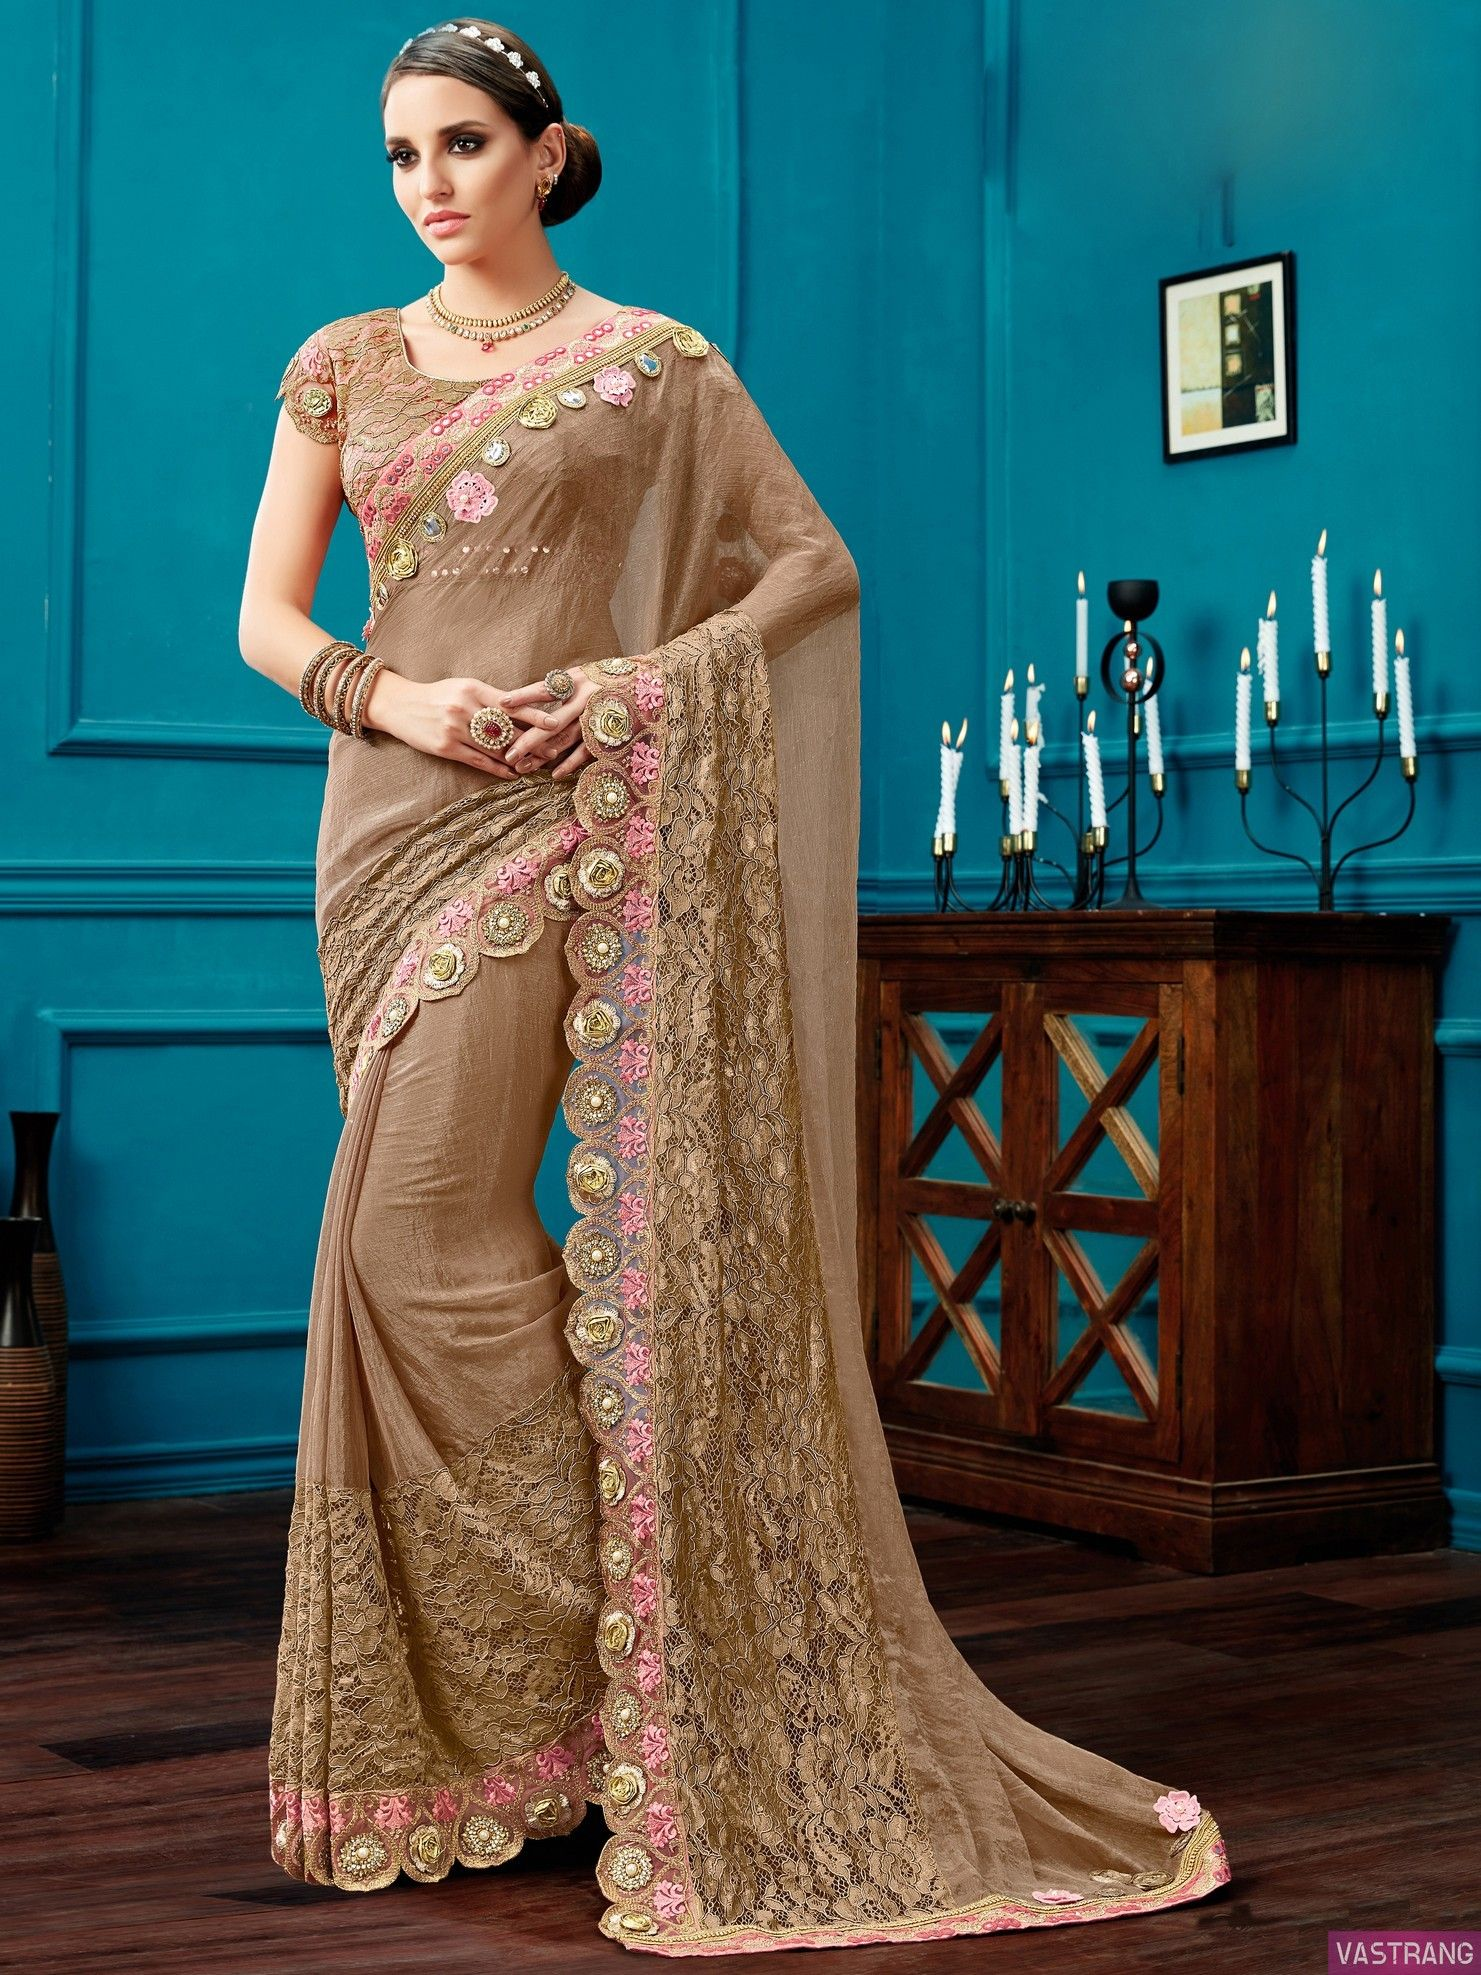 83aba493bd7f4b Gold Color New Heavy Flower Embroidered Girl Elegant Bridal Saree ...